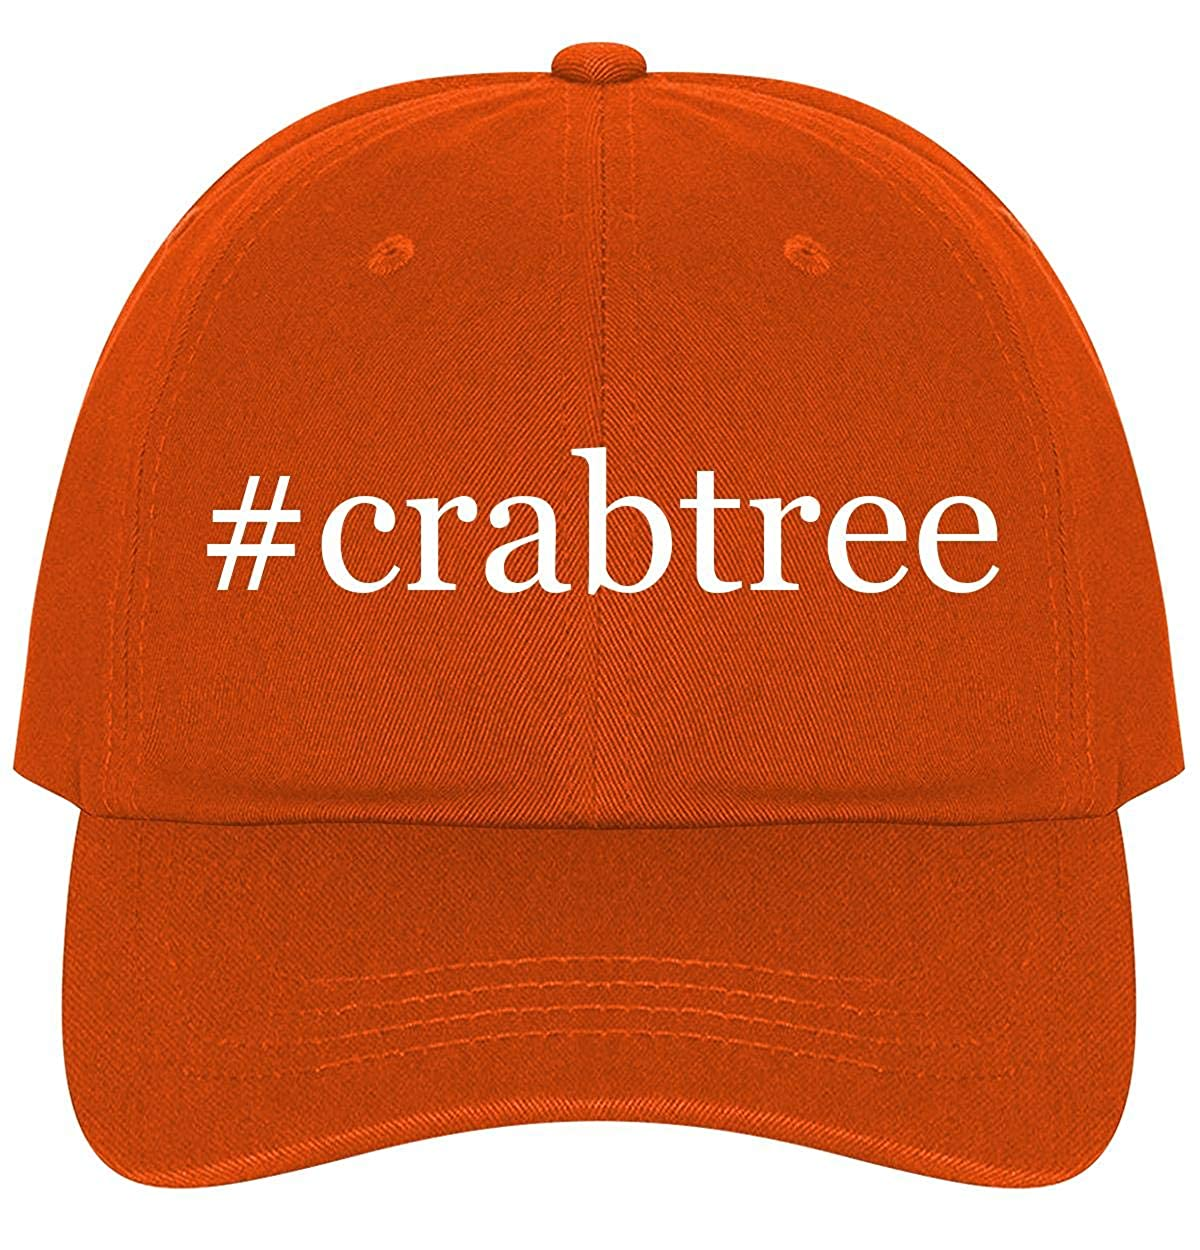 A Nice Comfortable Adjustable Hashtag Dad Hat Cap The Town Butler #Crabtree